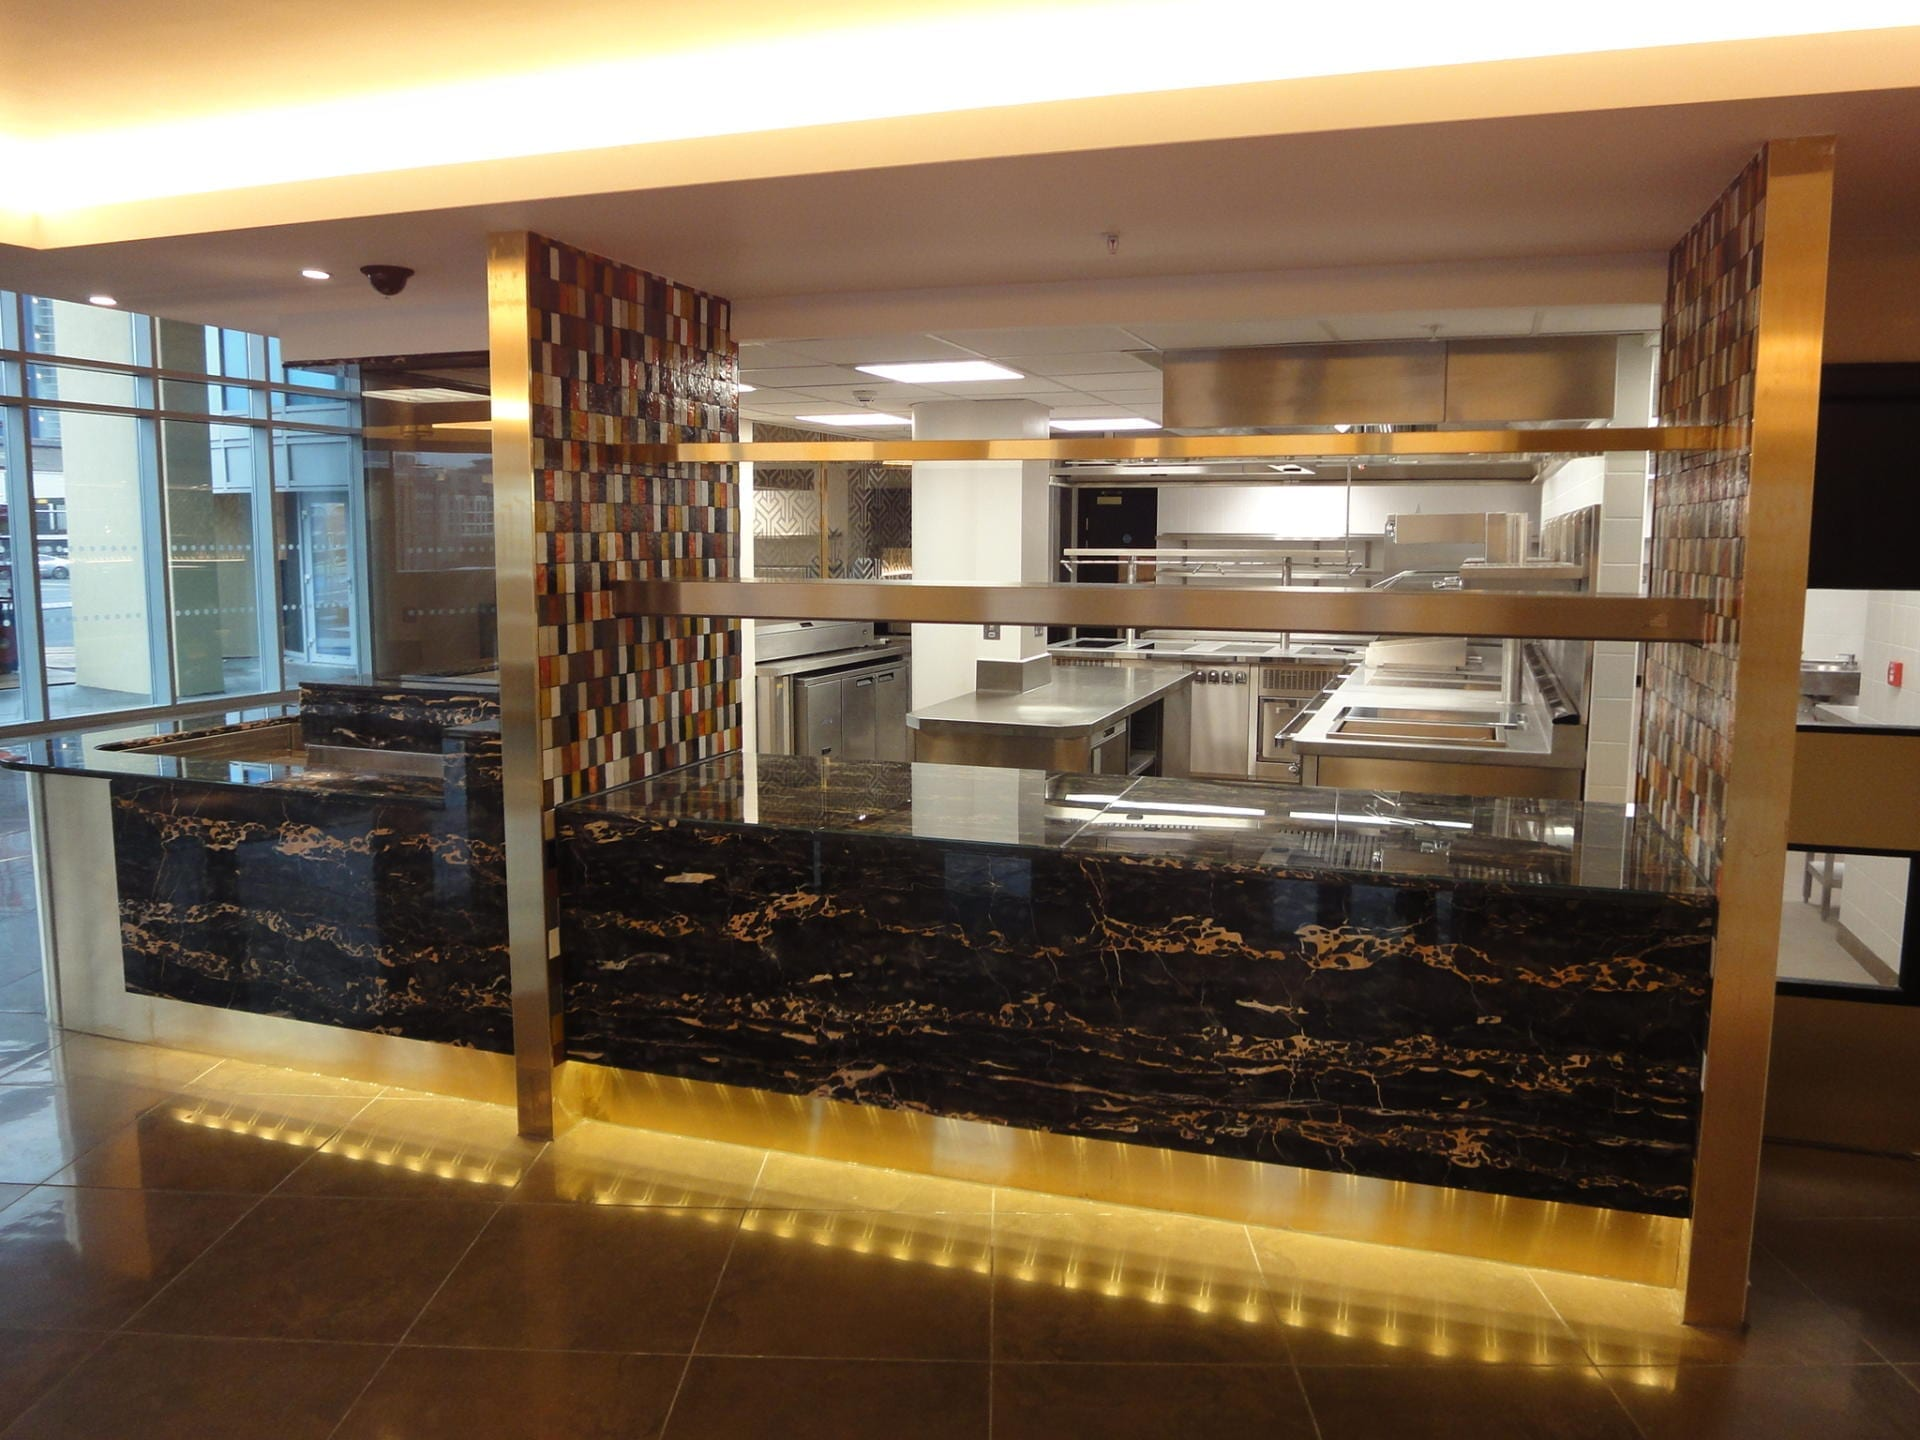 Hotel-Verta-Von-Essen-Battersea-Kitchen-Fabrication-Stainless-Steel-Commercial-spacecatering_10